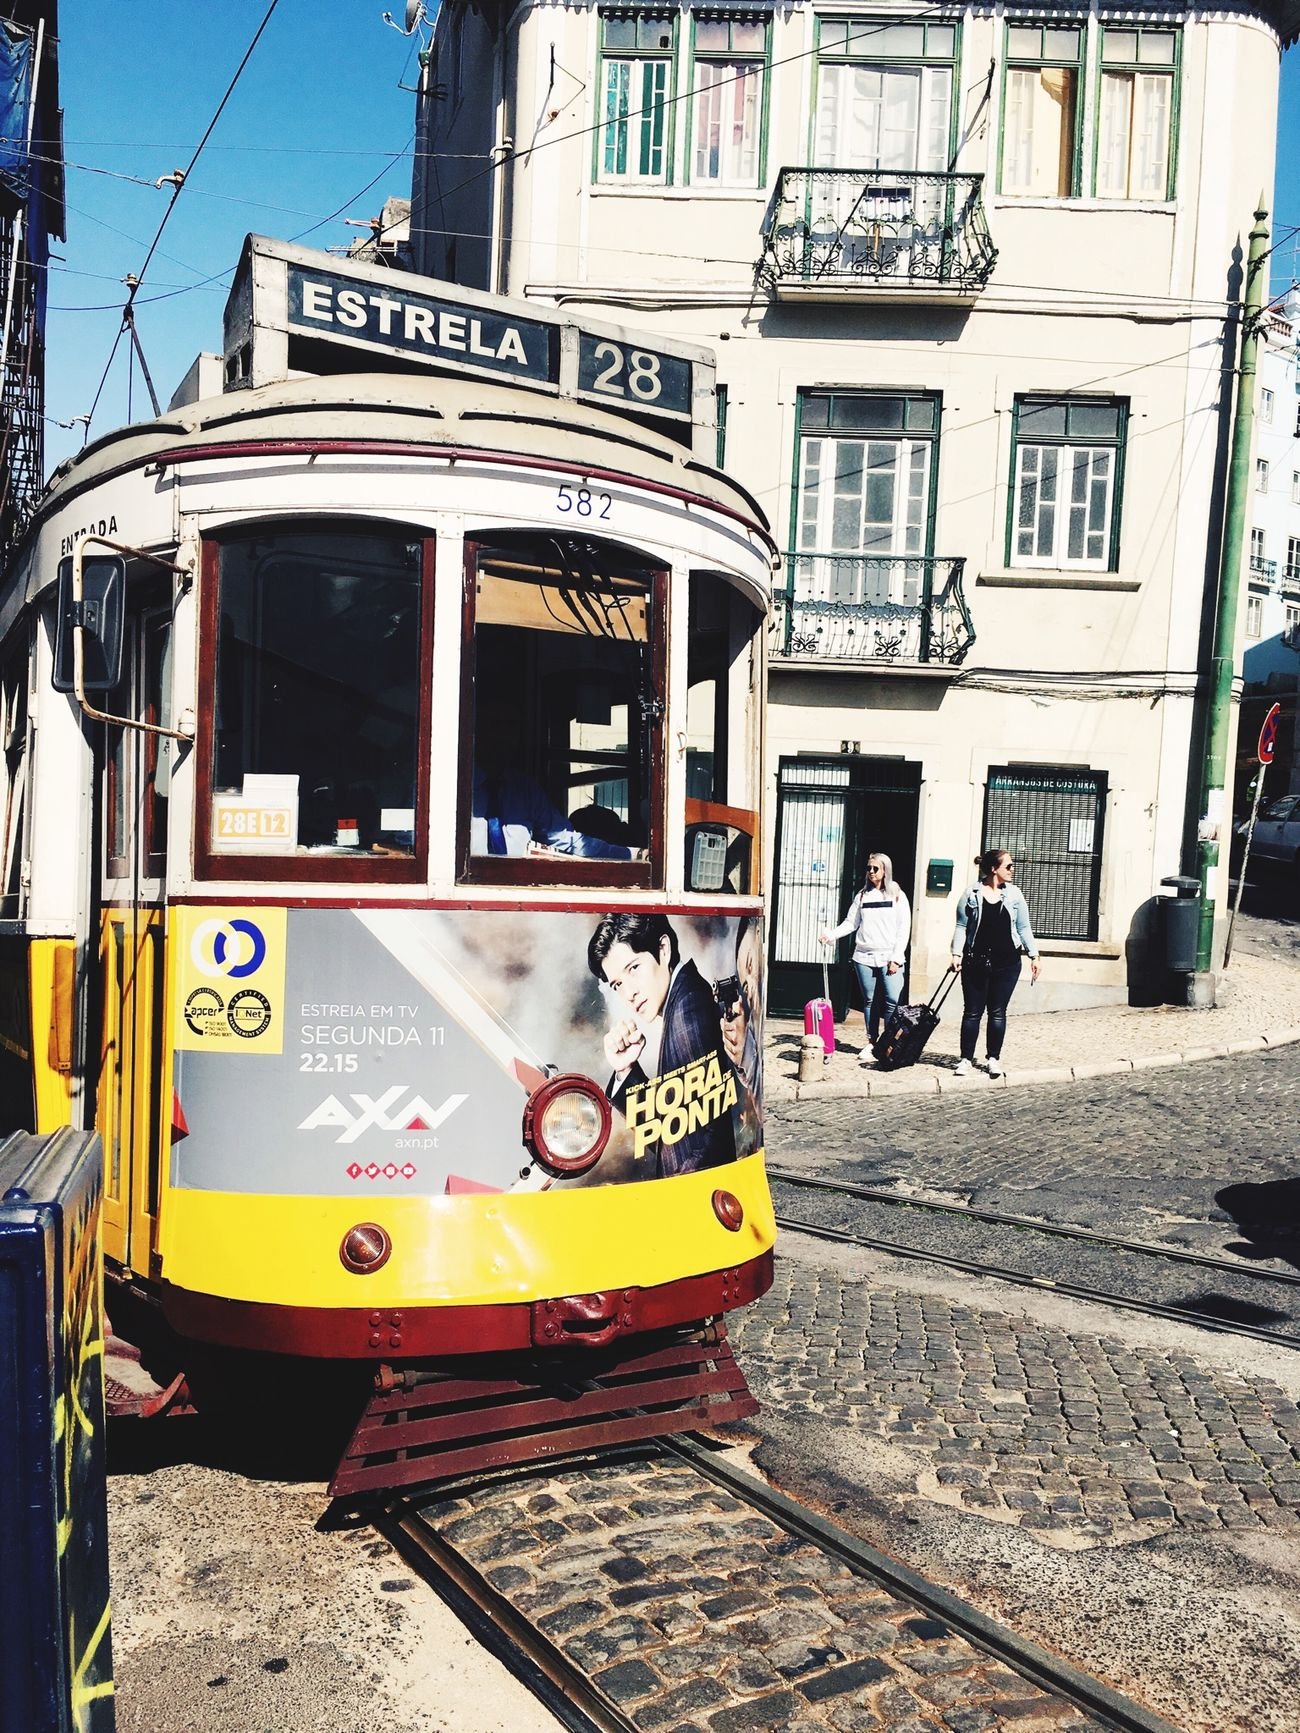 Tram28 Lisbon Check This Out Moving